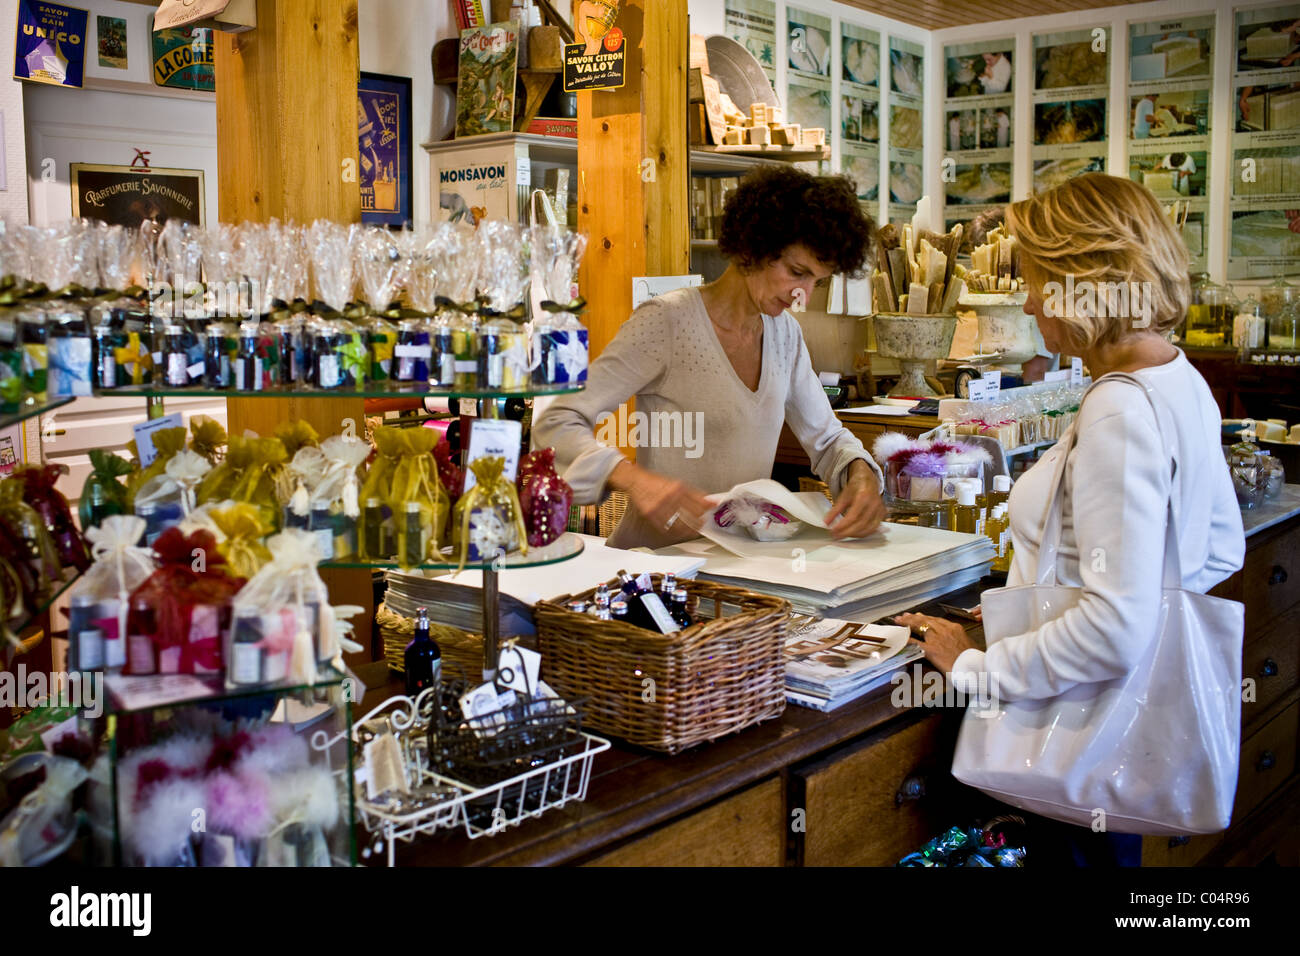 Shopper buying at artisan soaps Martin de Candre specialist savon shop Mestre at Fontevraud L'Abbaye, Loire - Stock Image